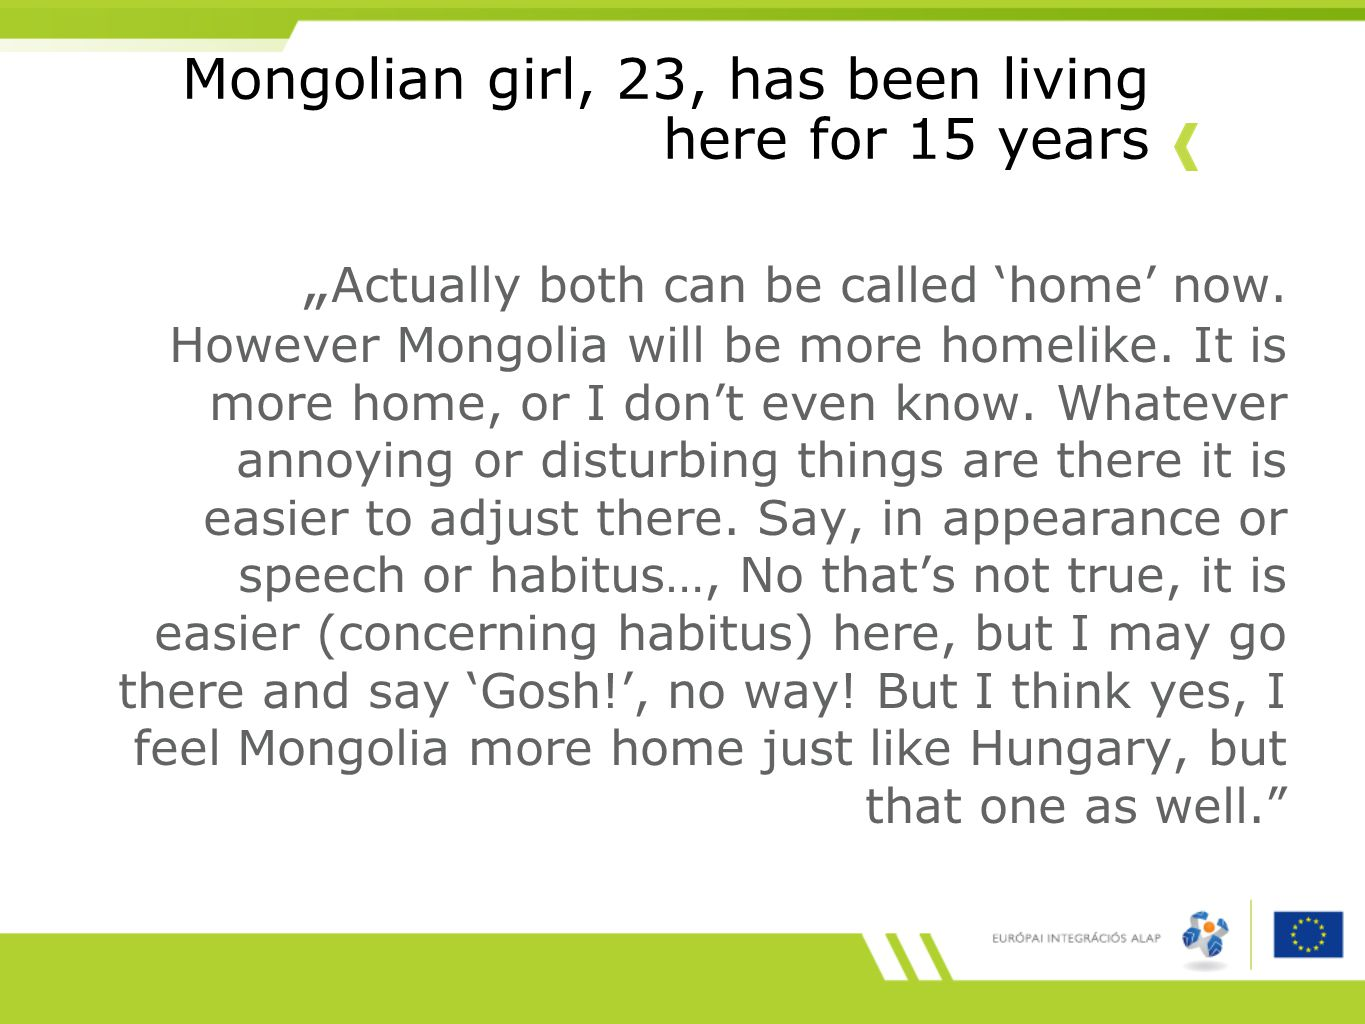 "Mongolian girl, 23, has been living here for 15 years "" Actually both can be called 'home' now."